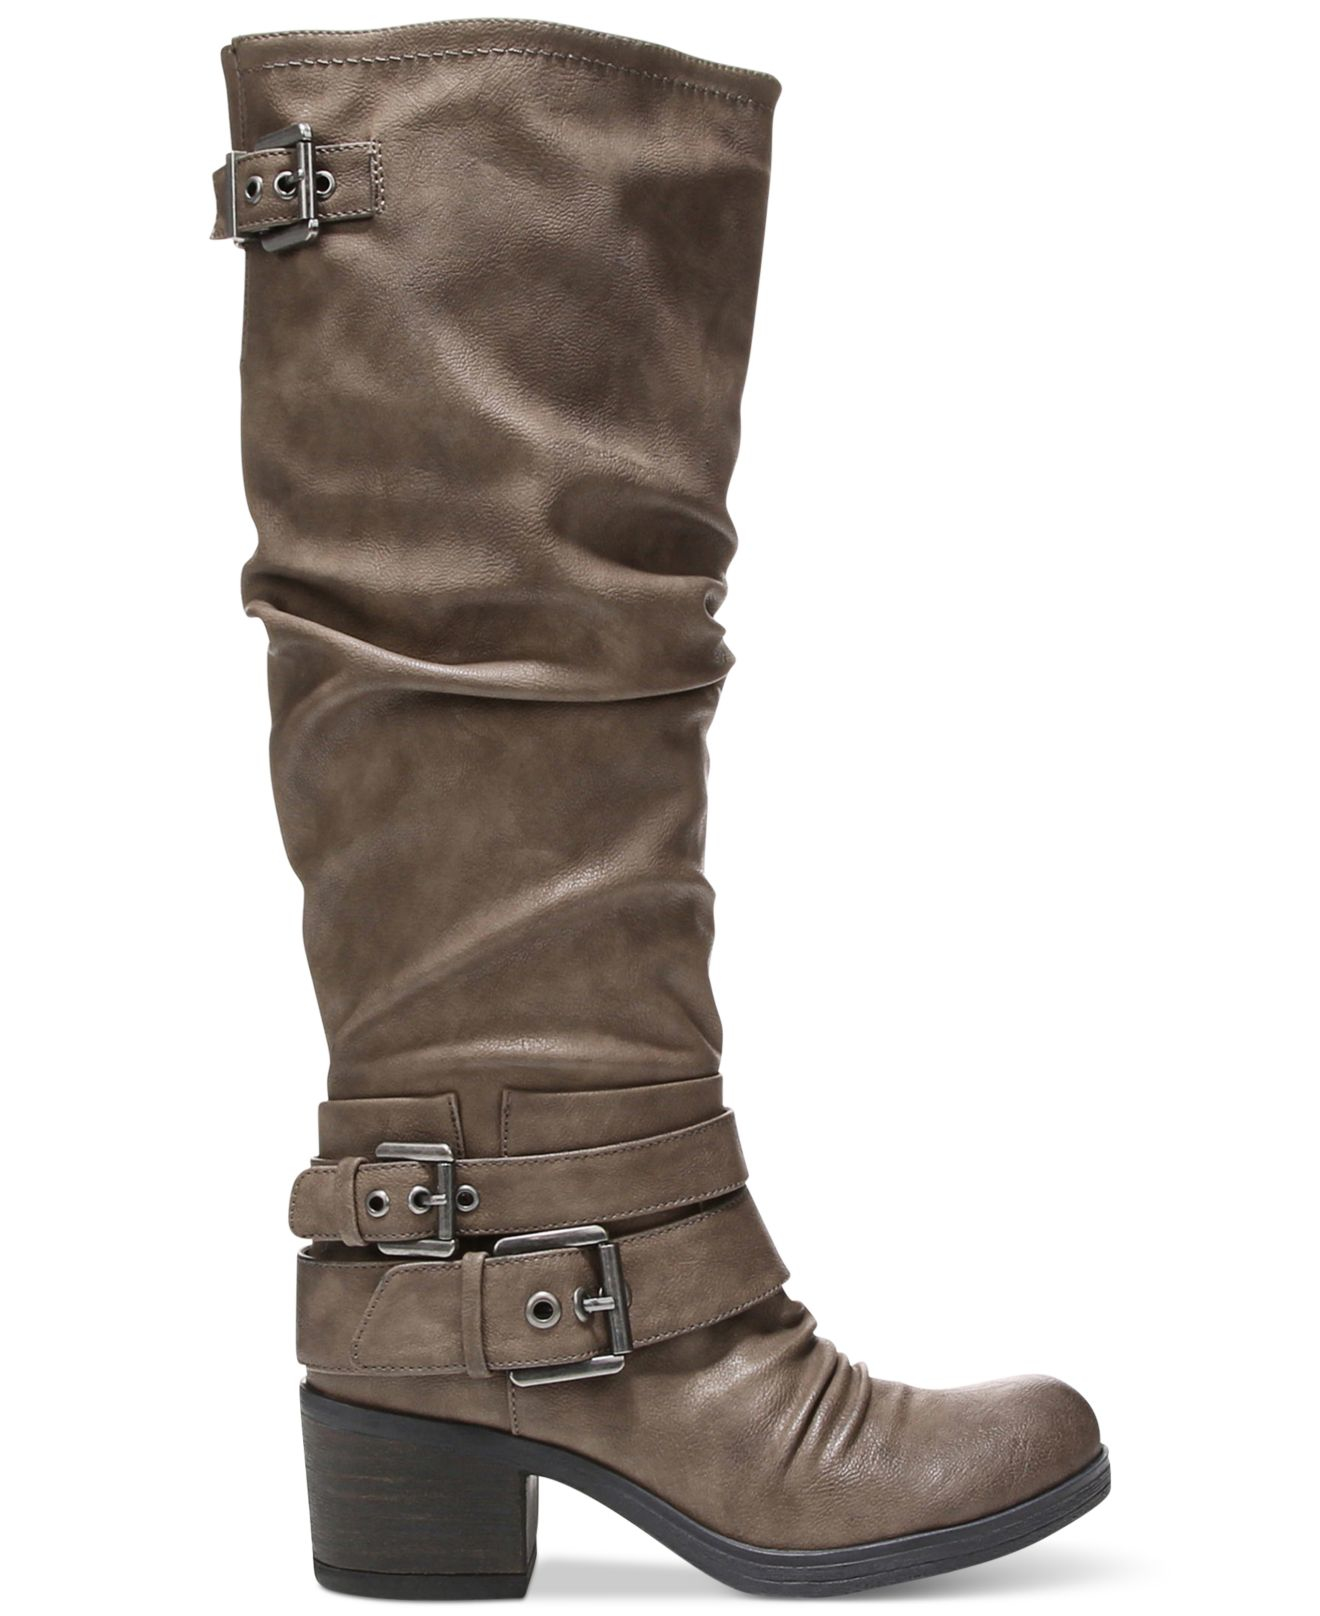 carlos by carlos santana boots in gray taupe lyst